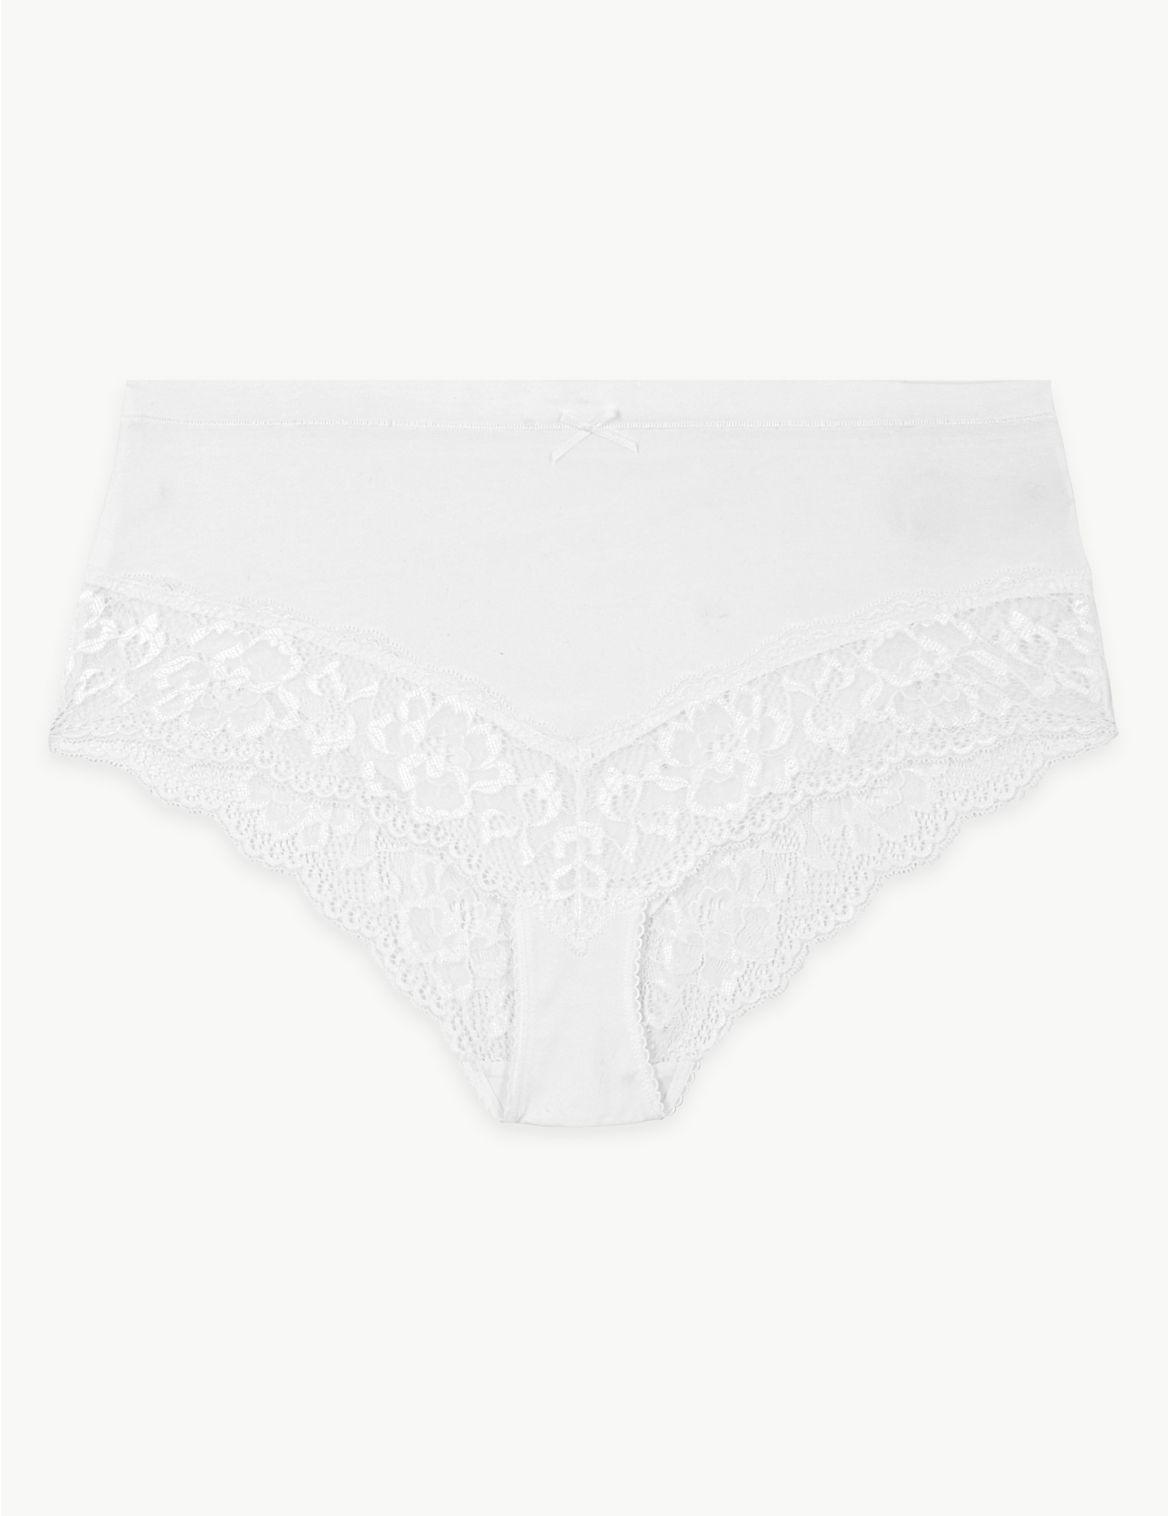 M /& S COLLECTION BLACK//WHITE 5 PACK GEOMETRIC LACE HIGH WAIST BRAZILIAN KNICKERS